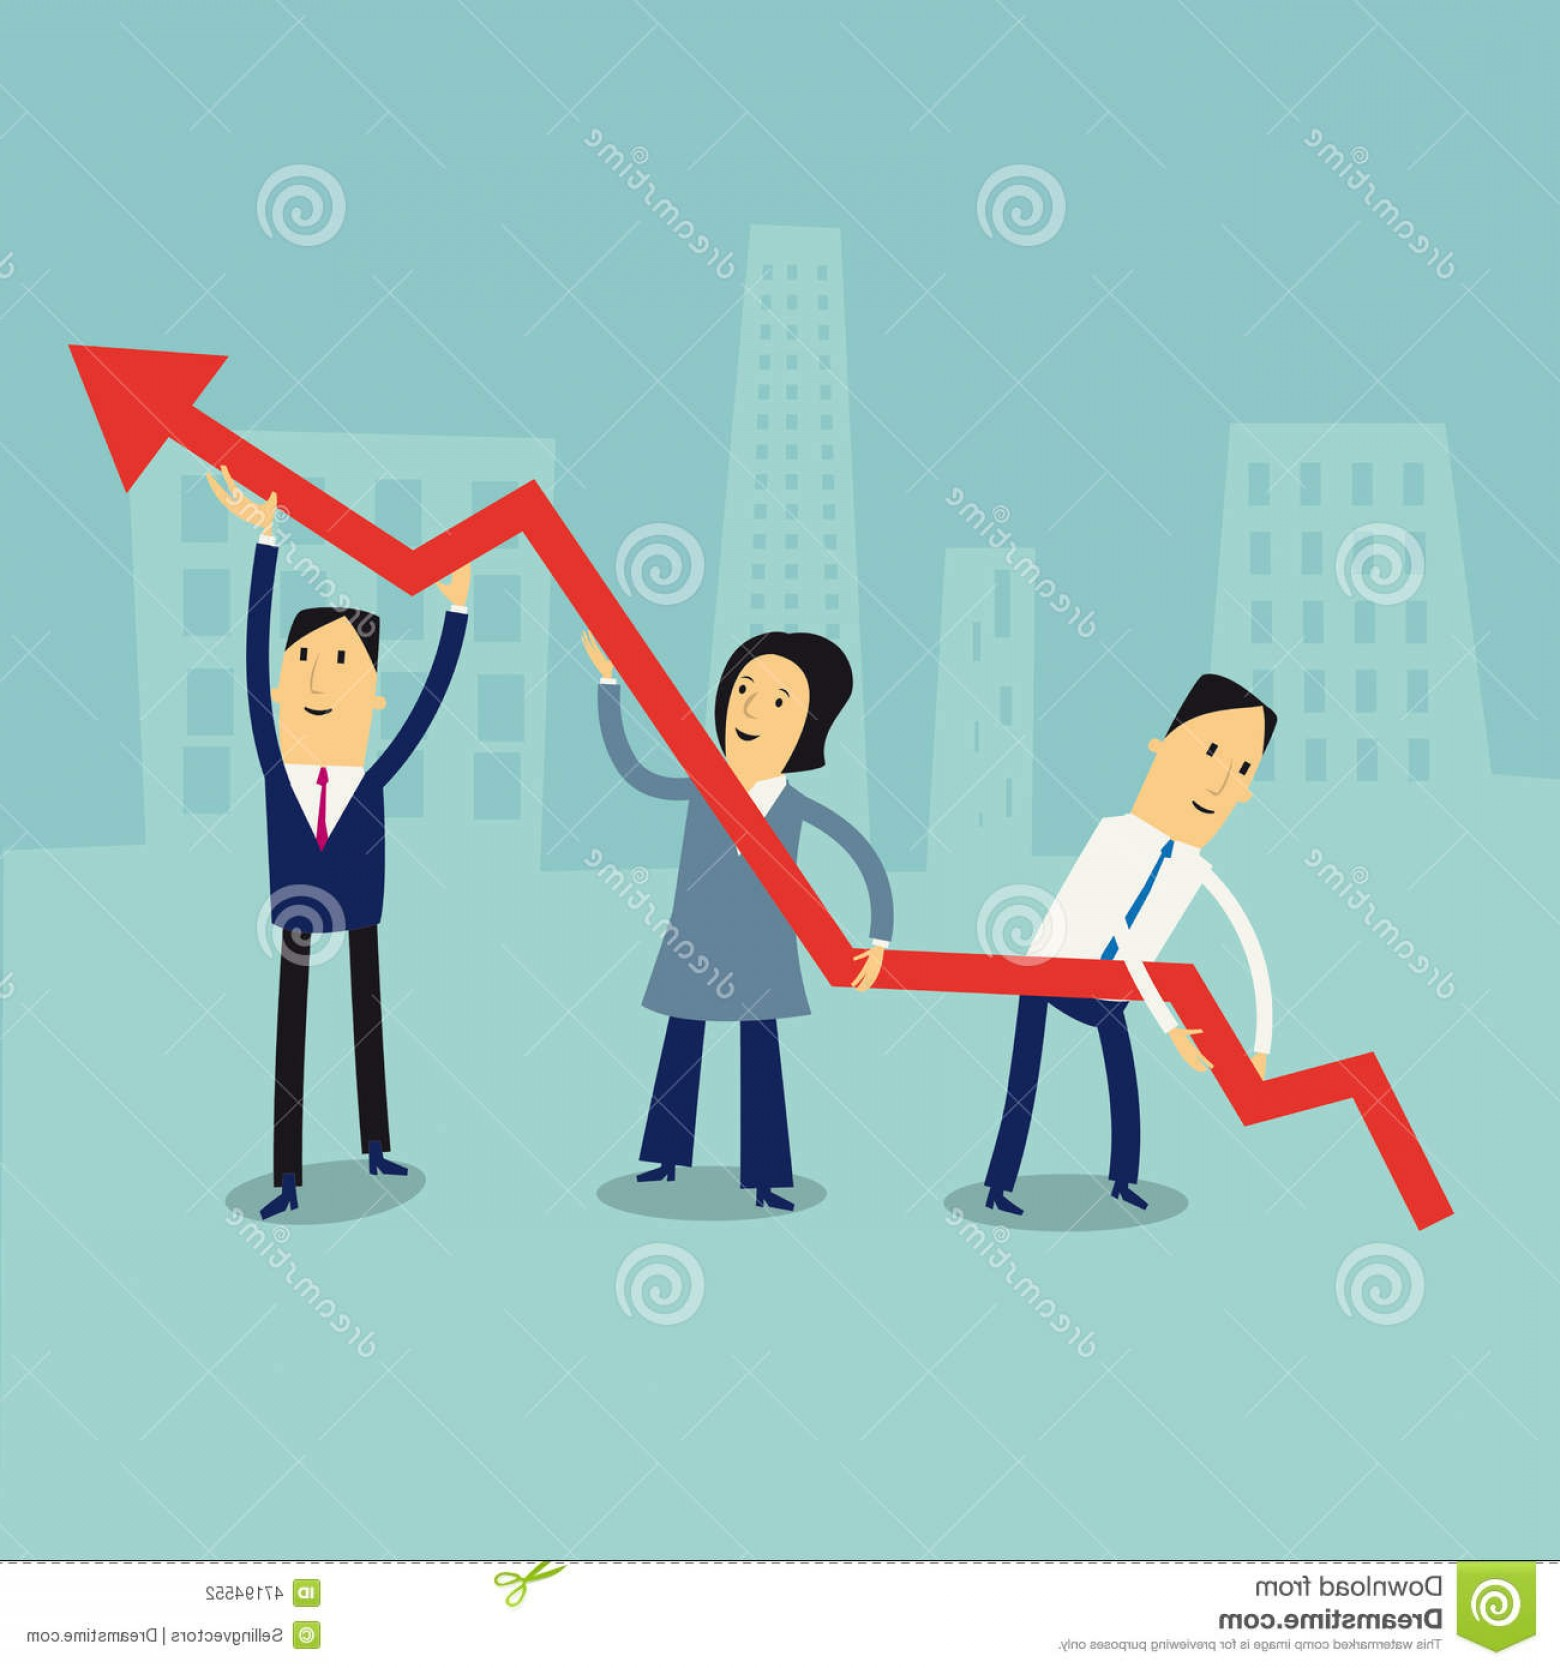 Growth Vector People: Stock Illustration Business Growth Concept Group Cartoon People Holding Growing Red Arrow Image